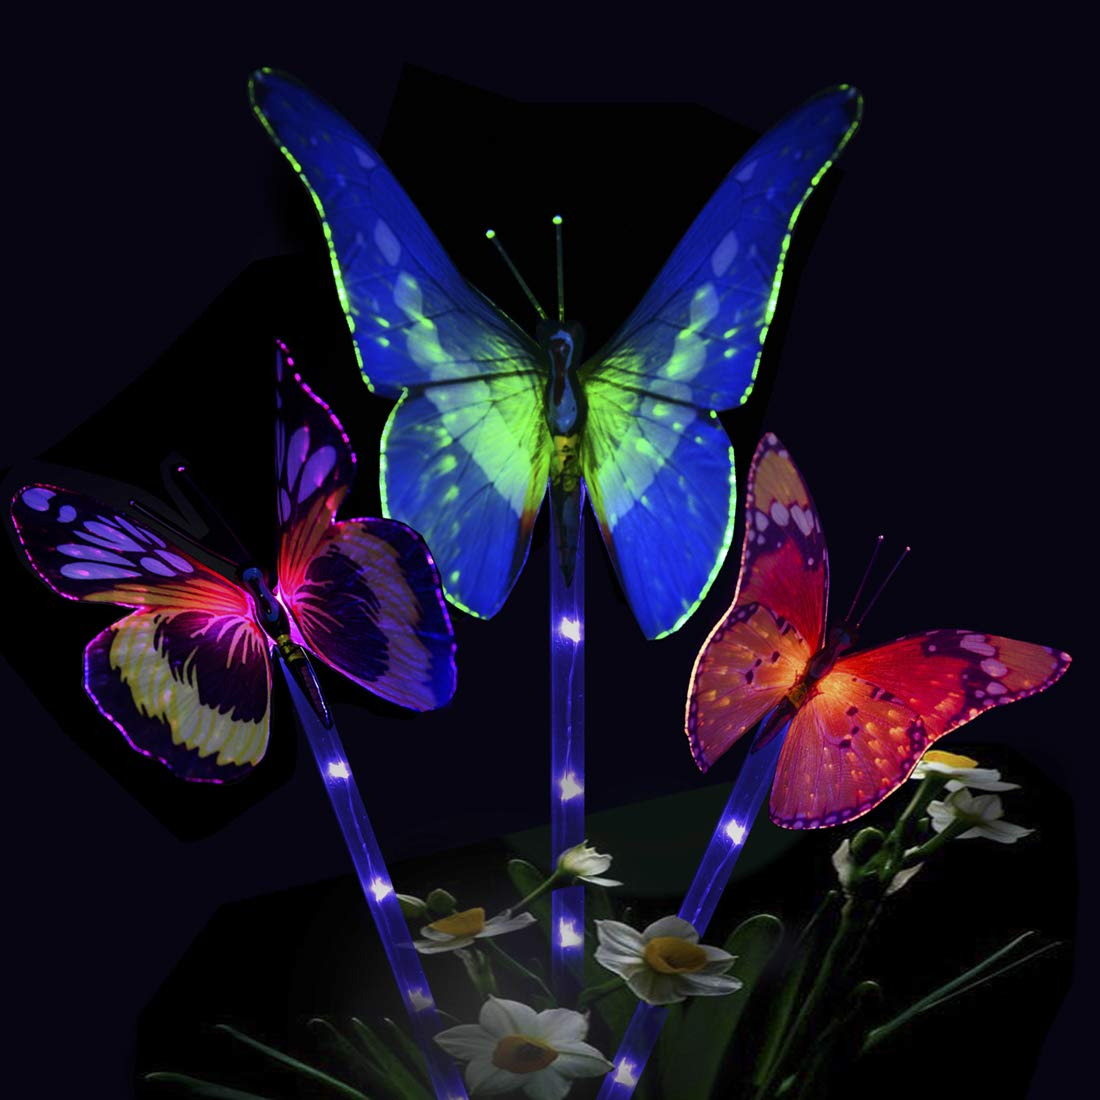 Solarmks Solar Lights Outdoor Butterfly LED Garden Decorative Light,with a Purple LED Light Stakes Multi-Colored Changing Fiber Optic Butterfly Landscape Lighting for Garden Patio Backyard,Pack of 3